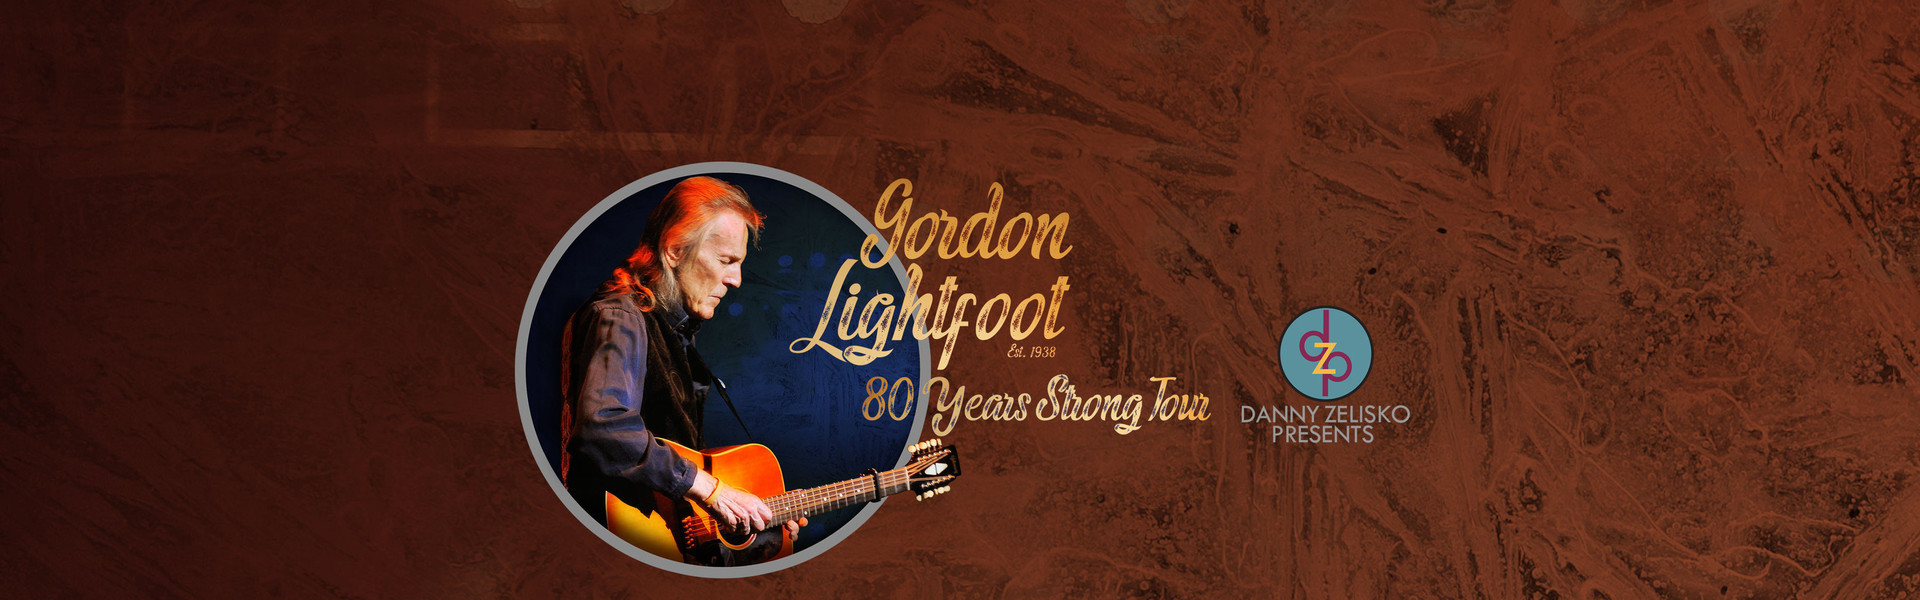 DZP and Westgate present one of the all-time great singer-songwriter musicians of our time, Gordon Lightfoot. Celebrate the greatest hits of a legendary artist with an unforgettable show!